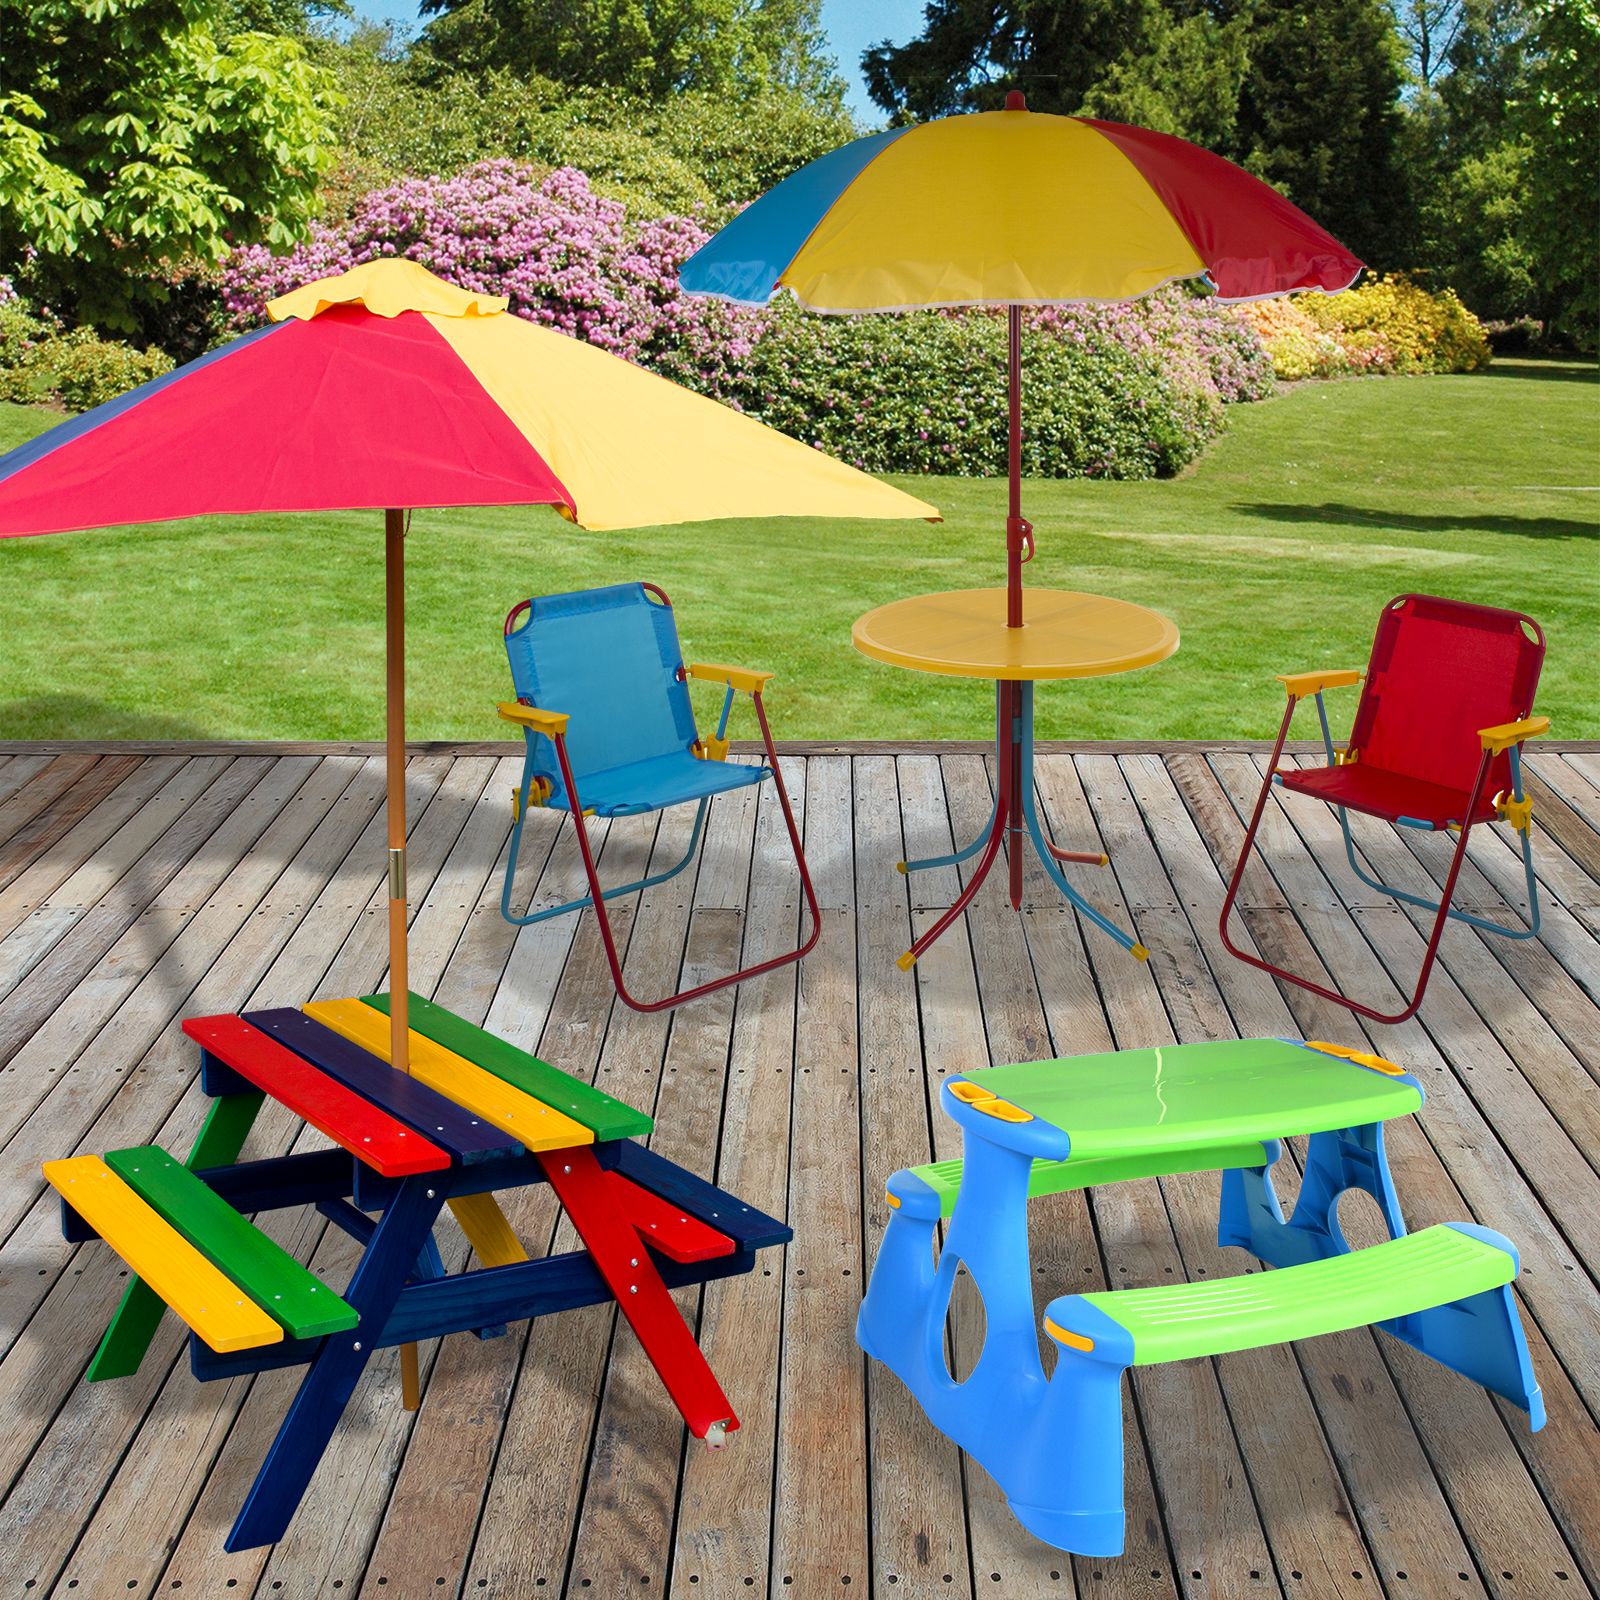 Details about Kids Childrens Picnic Bench Table Outdoor Garden Furniture  Plastic Wood Parasol